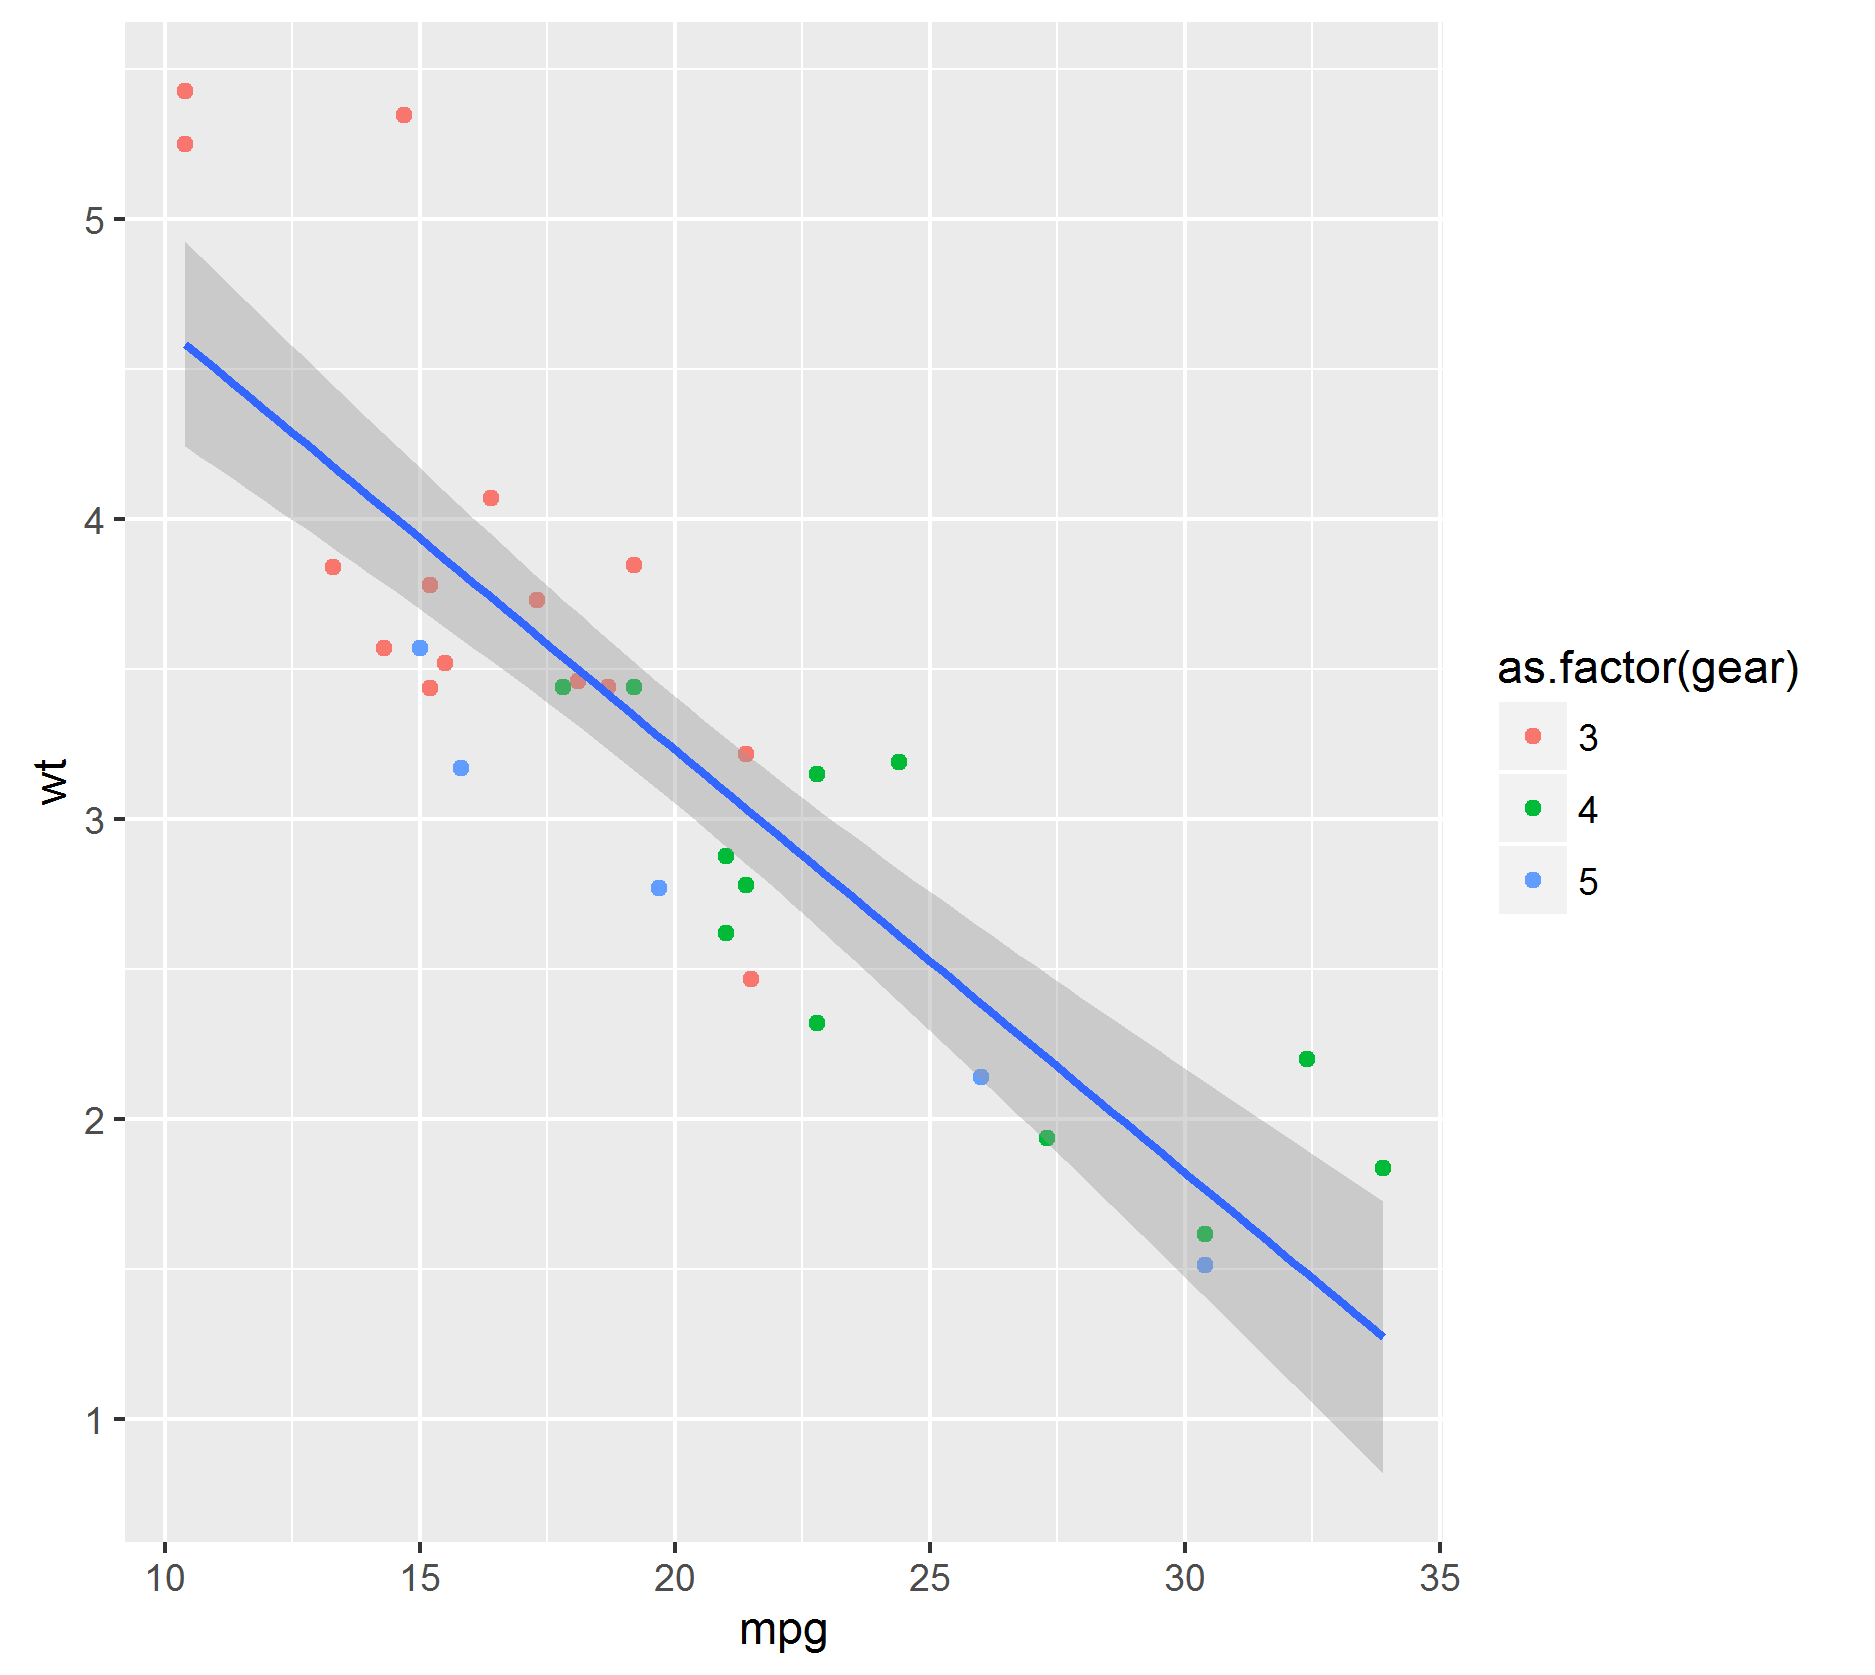 ggplot geom_point and geom smooth method=lm